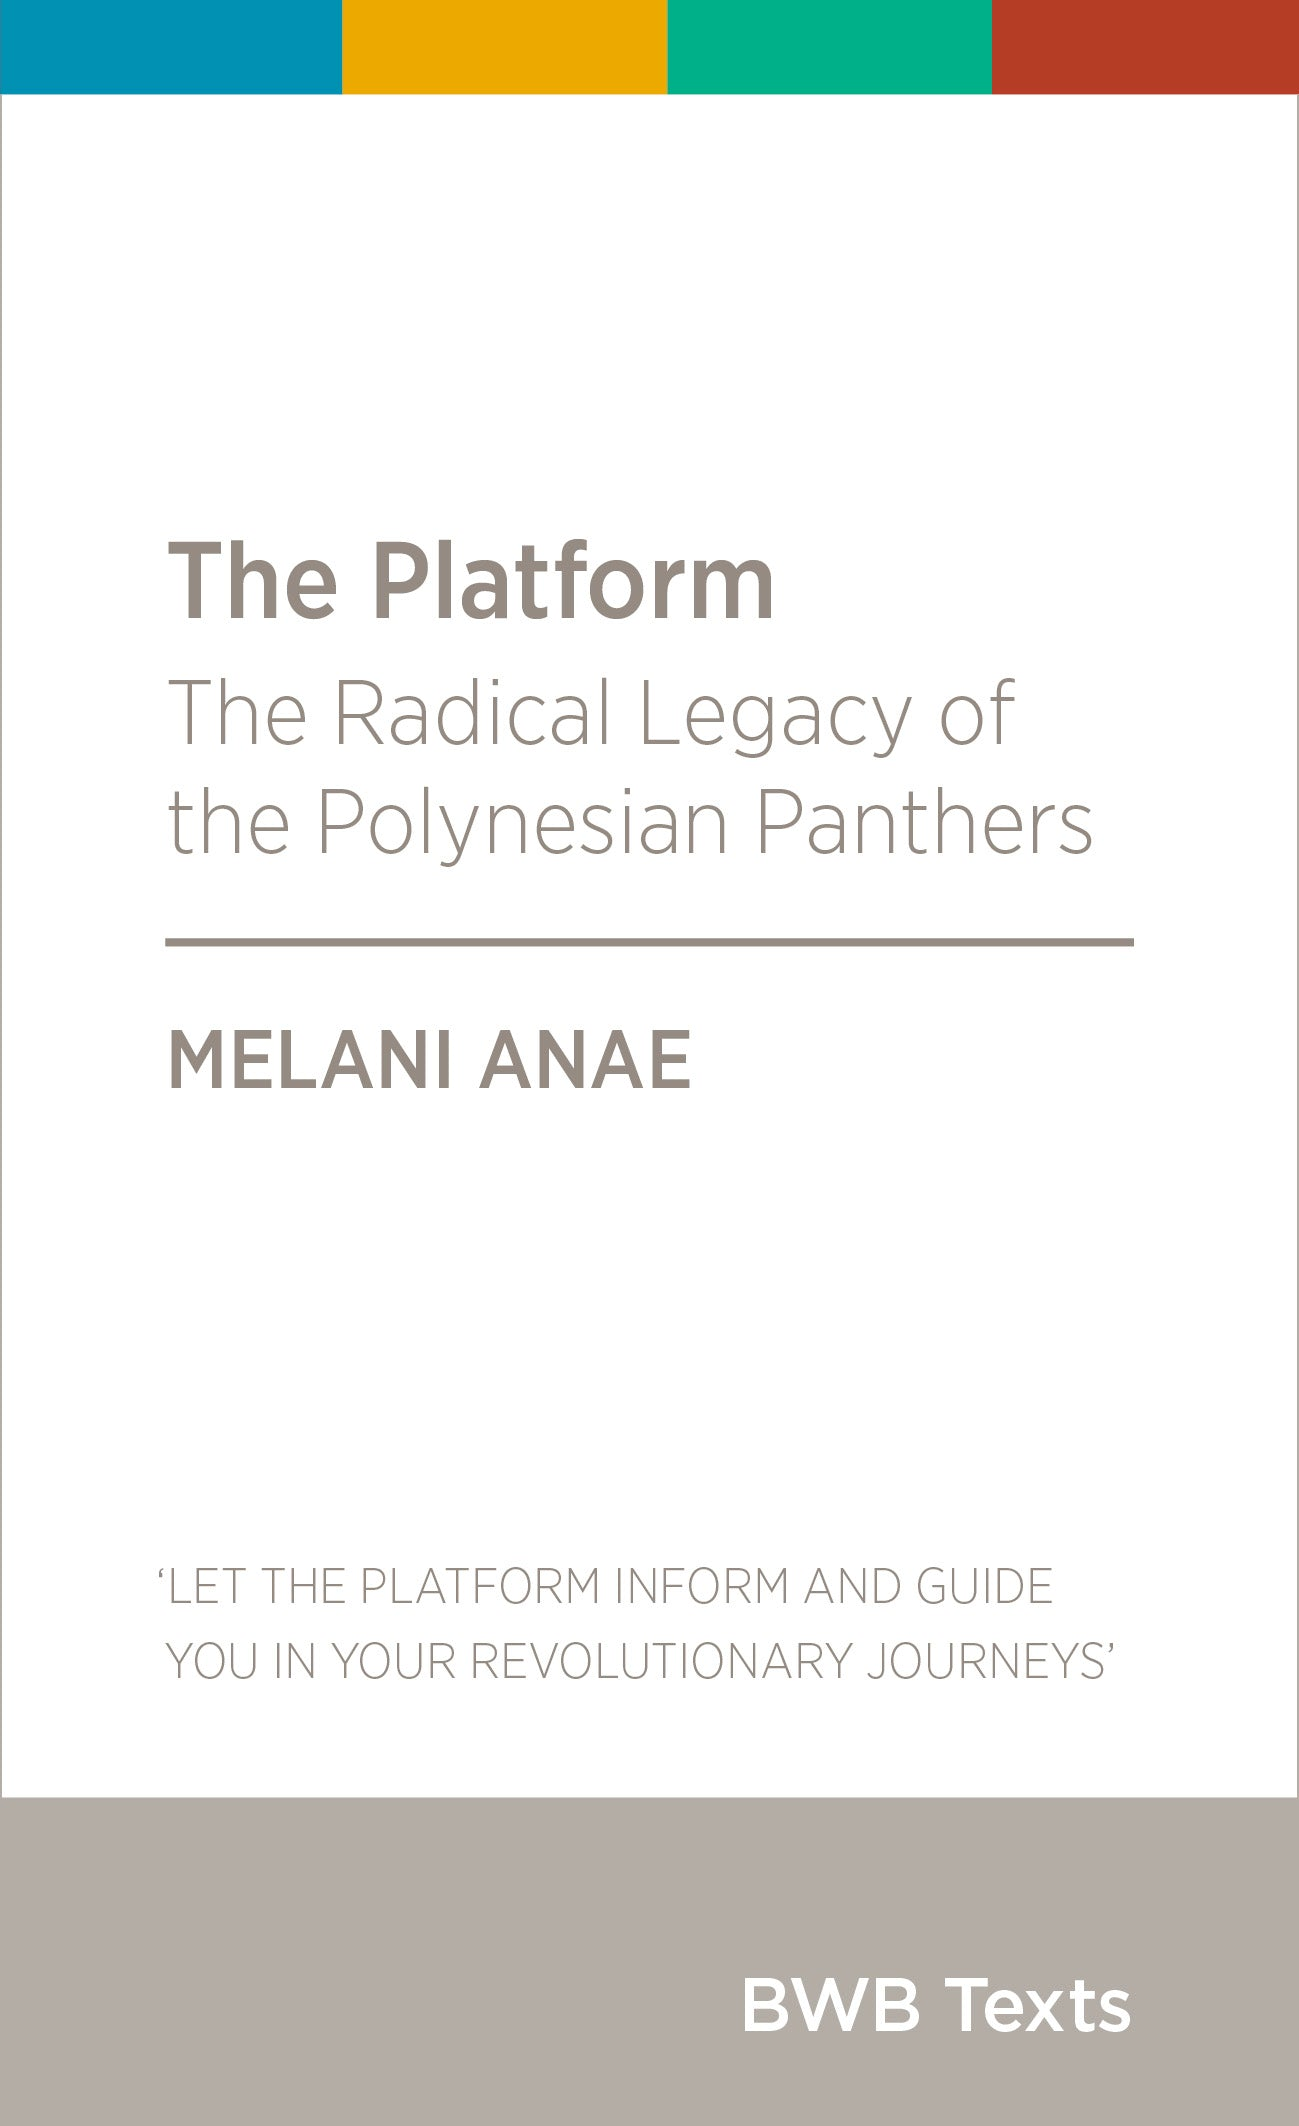 Book: The Platform by Melani Anae